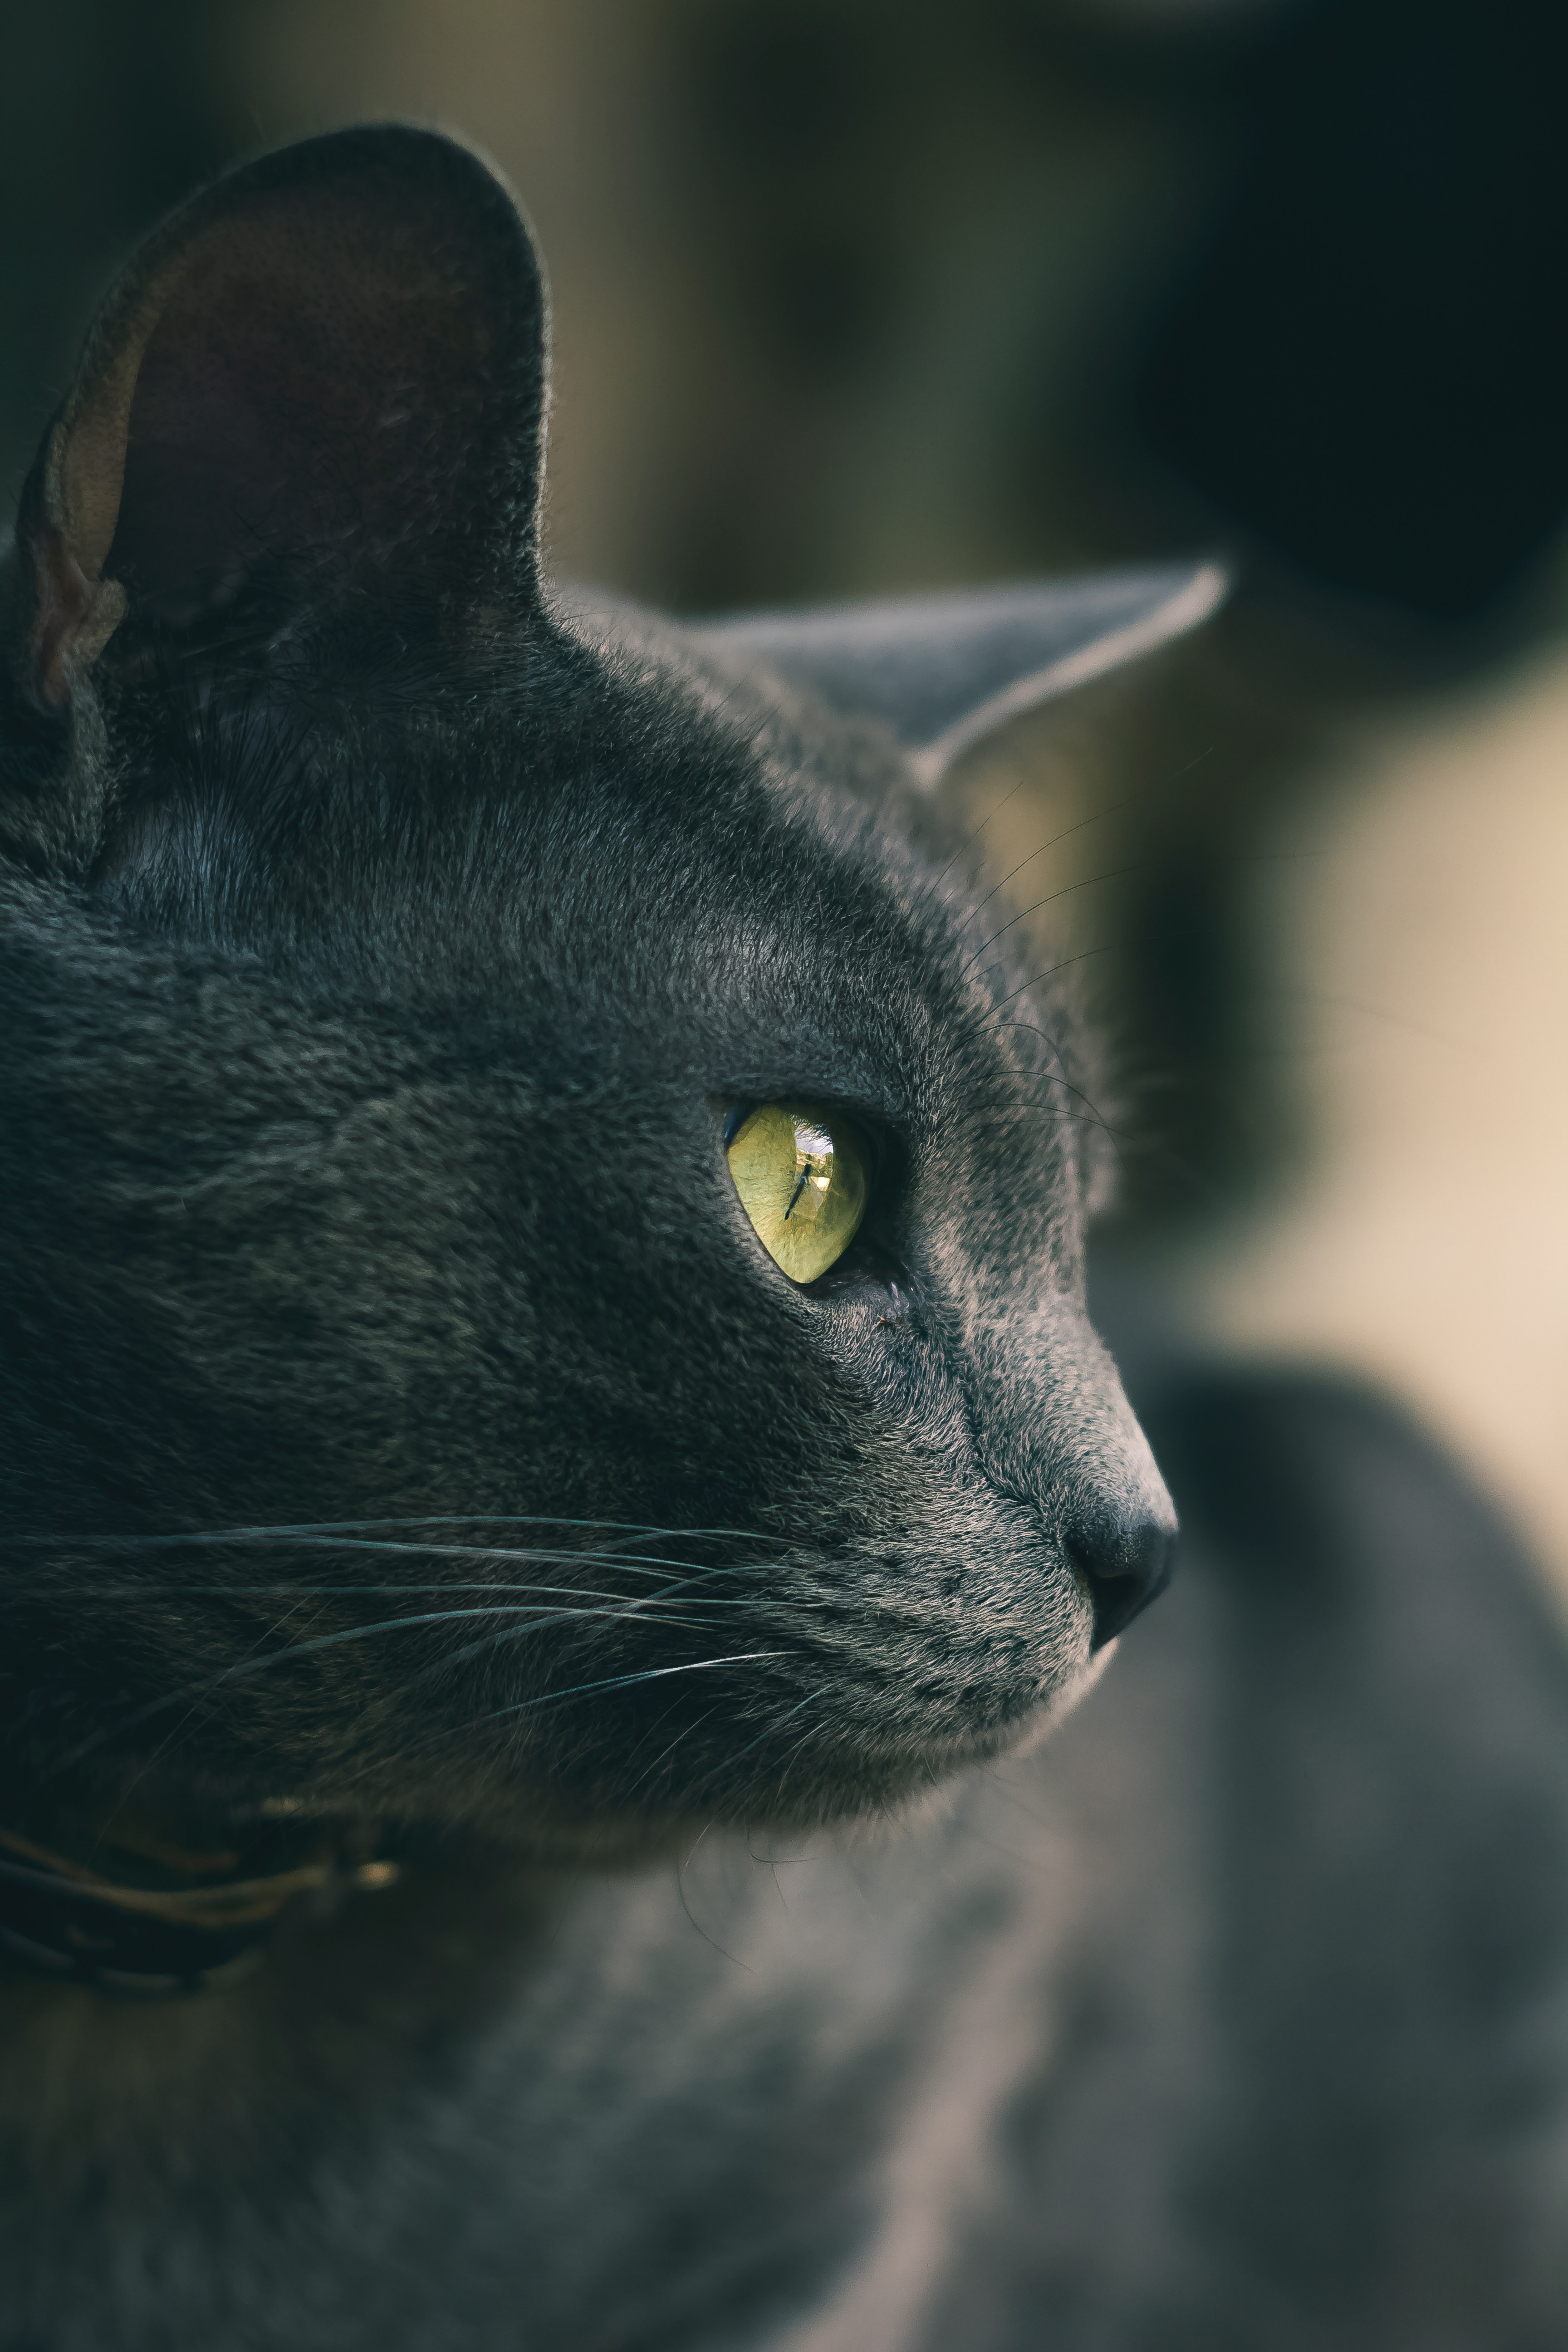 127082 download wallpaper Animals, Cat, Eyes, Nose, Wool, Grey screensavers and pictures for free